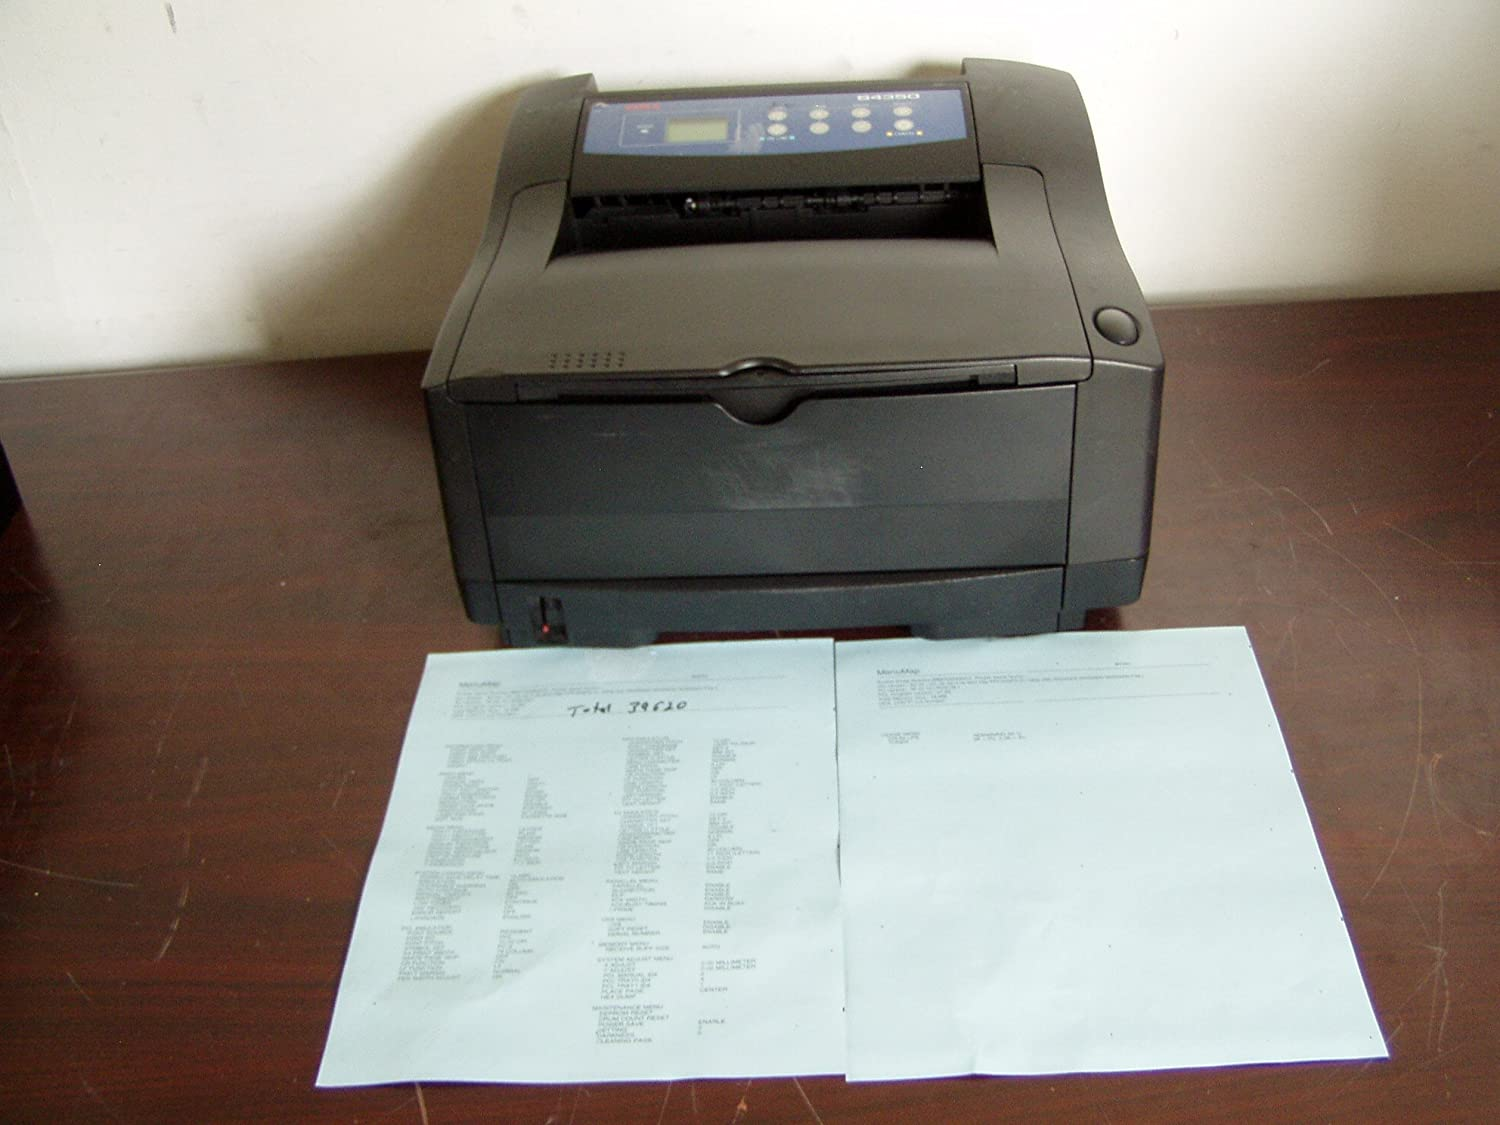 B4350 PRINTER WINDOWS 8 DRIVER DOWNLOAD